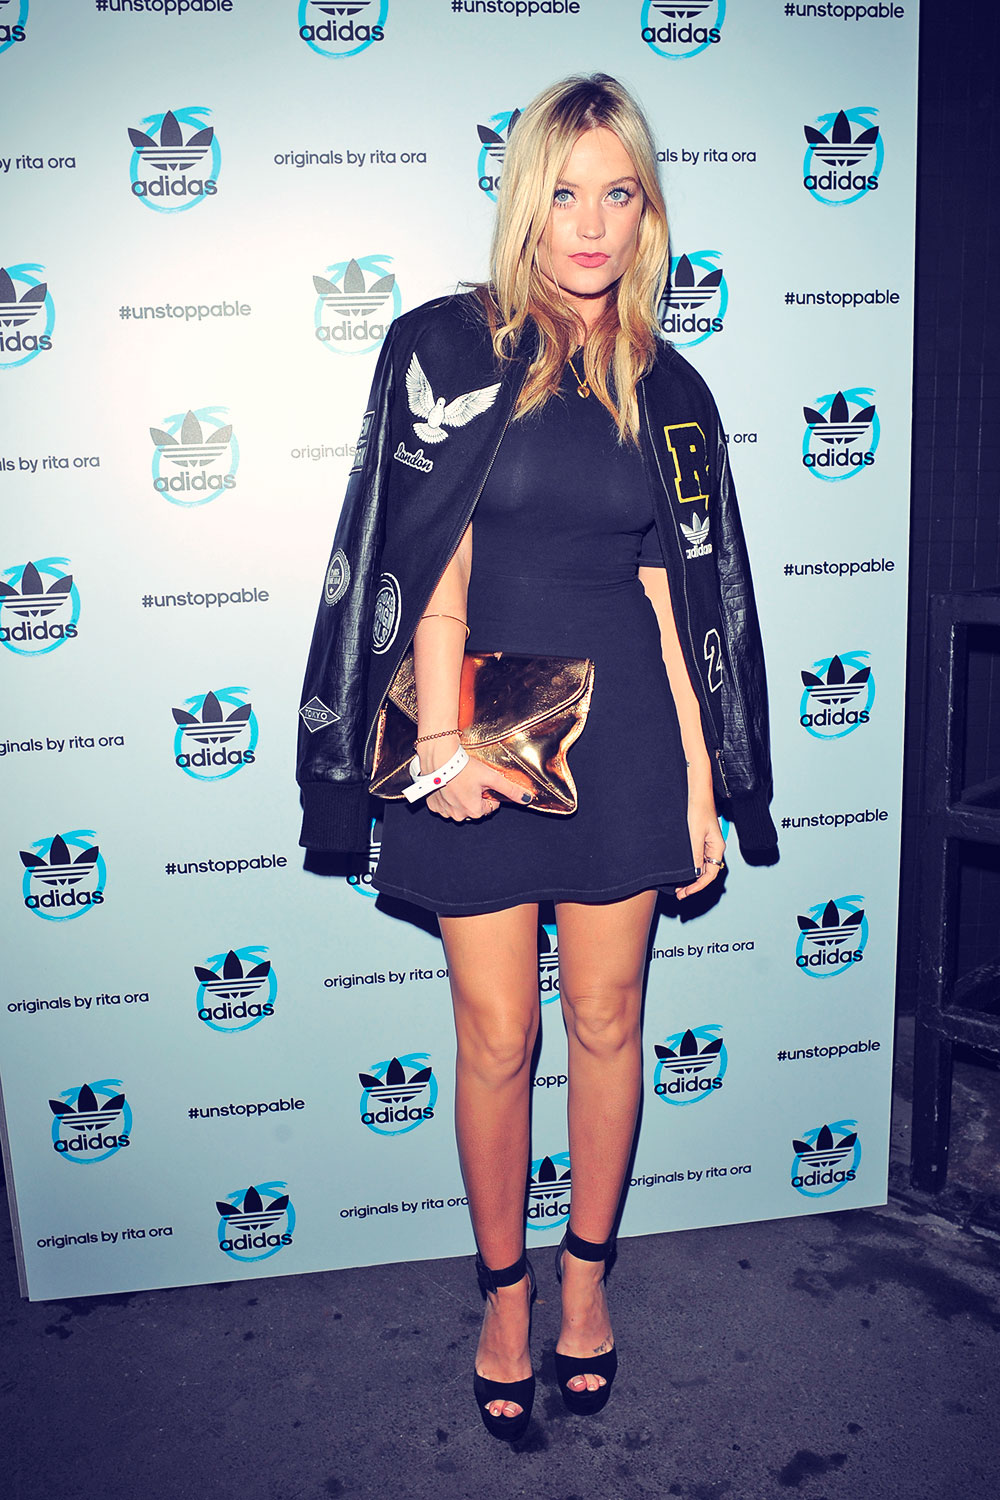 Laura Whitmore attends adidas originals by Rita Ora launch